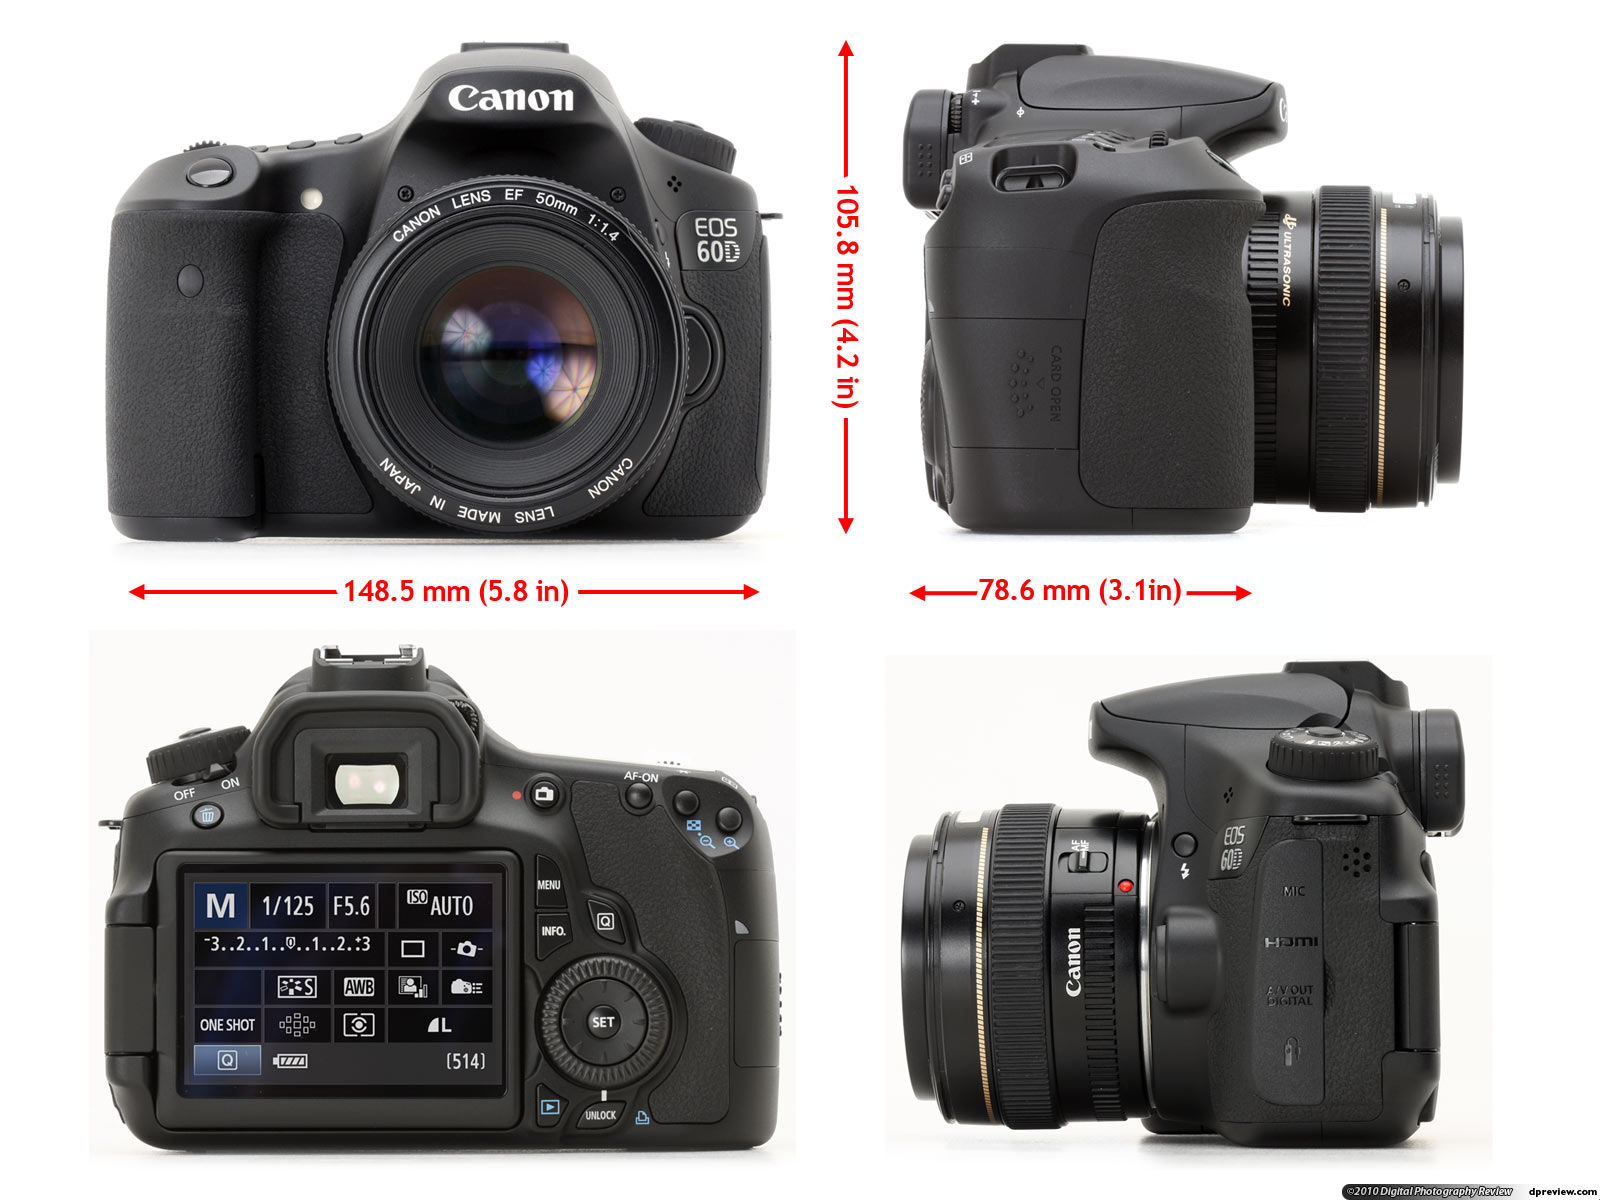 canon eos 60d review digital photography review. Black Bedroom Furniture Sets. Home Design Ideas